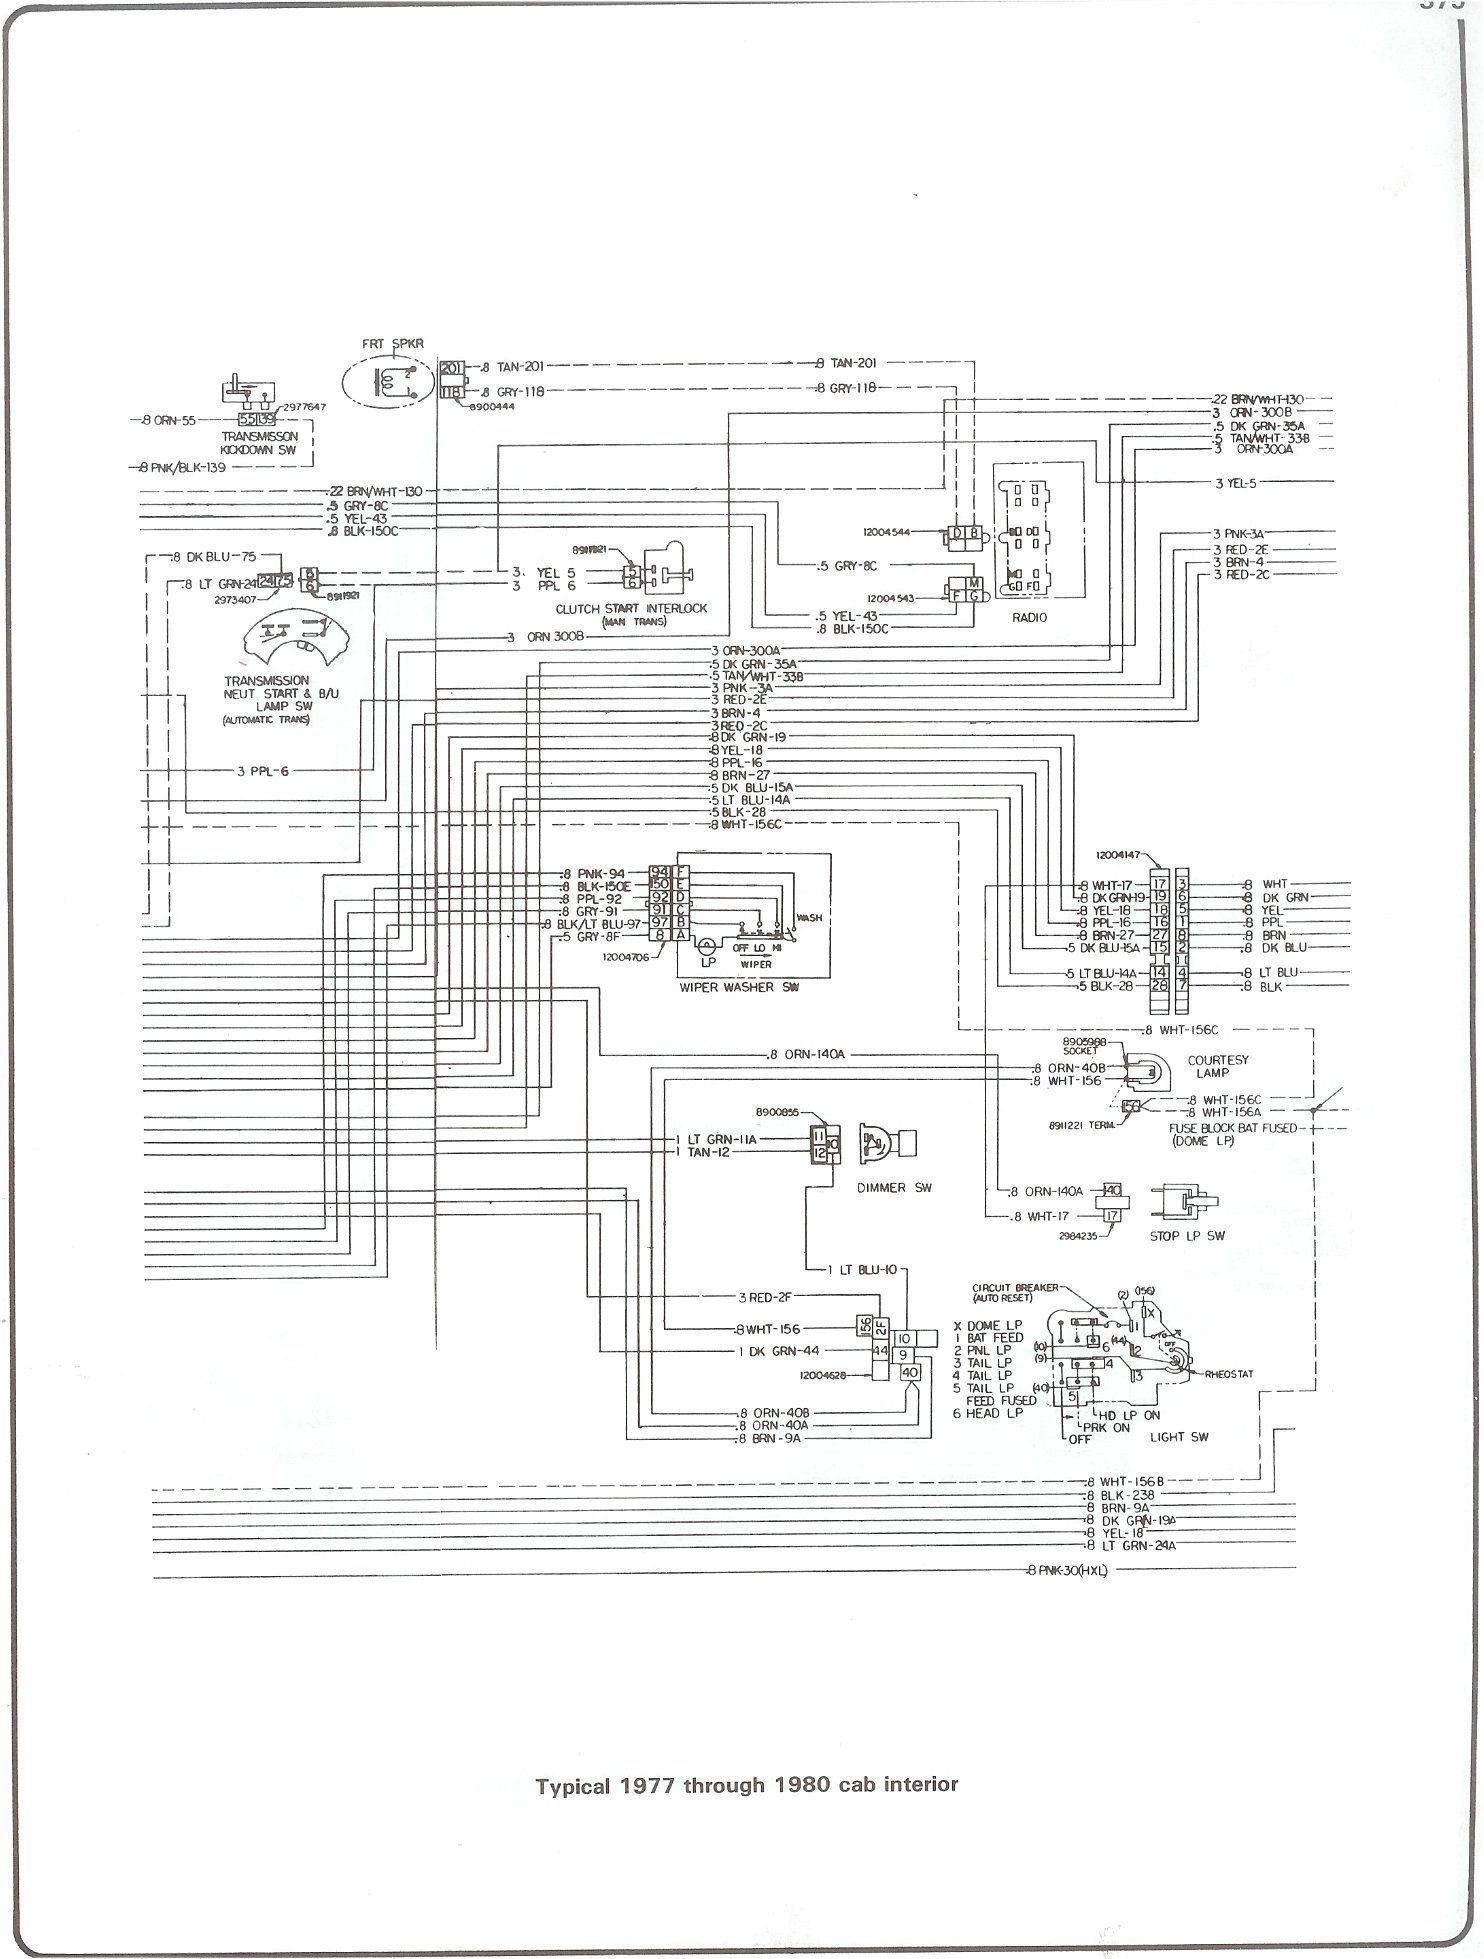 77 Gmc Ignition Wiring Diagram Guide And Troubleshooting Of 1992 S10 Blazer Fuse Images Gallery